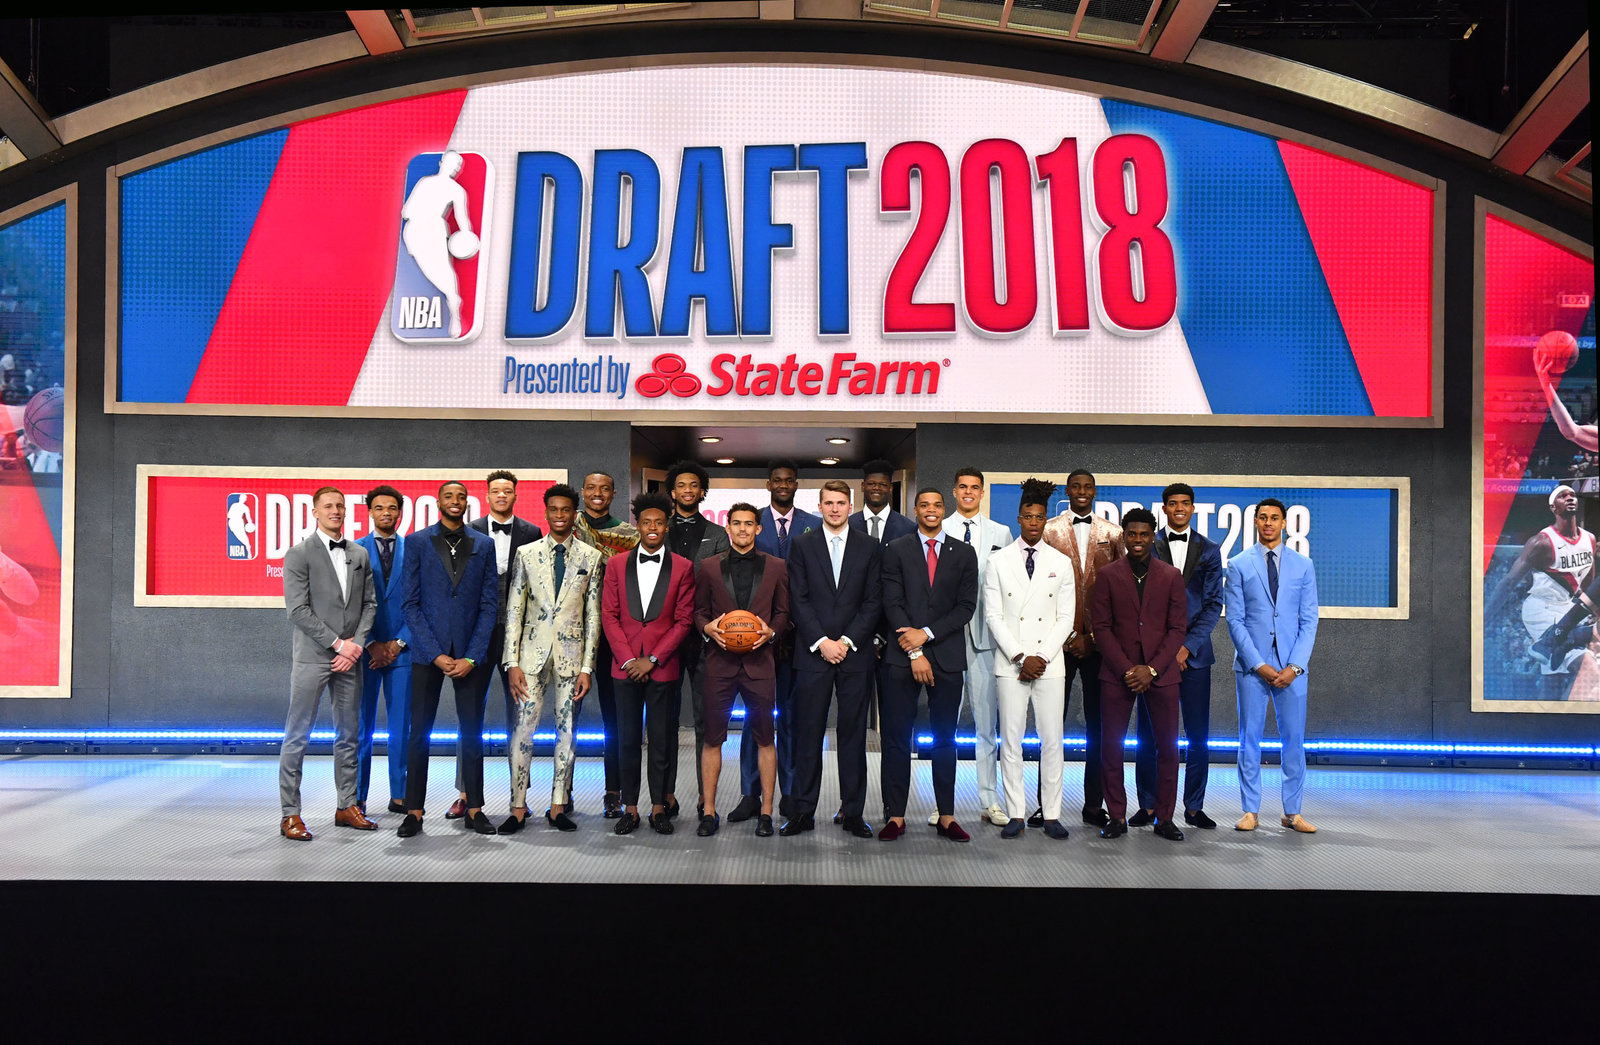 The 2018 draft class poses for a photo.